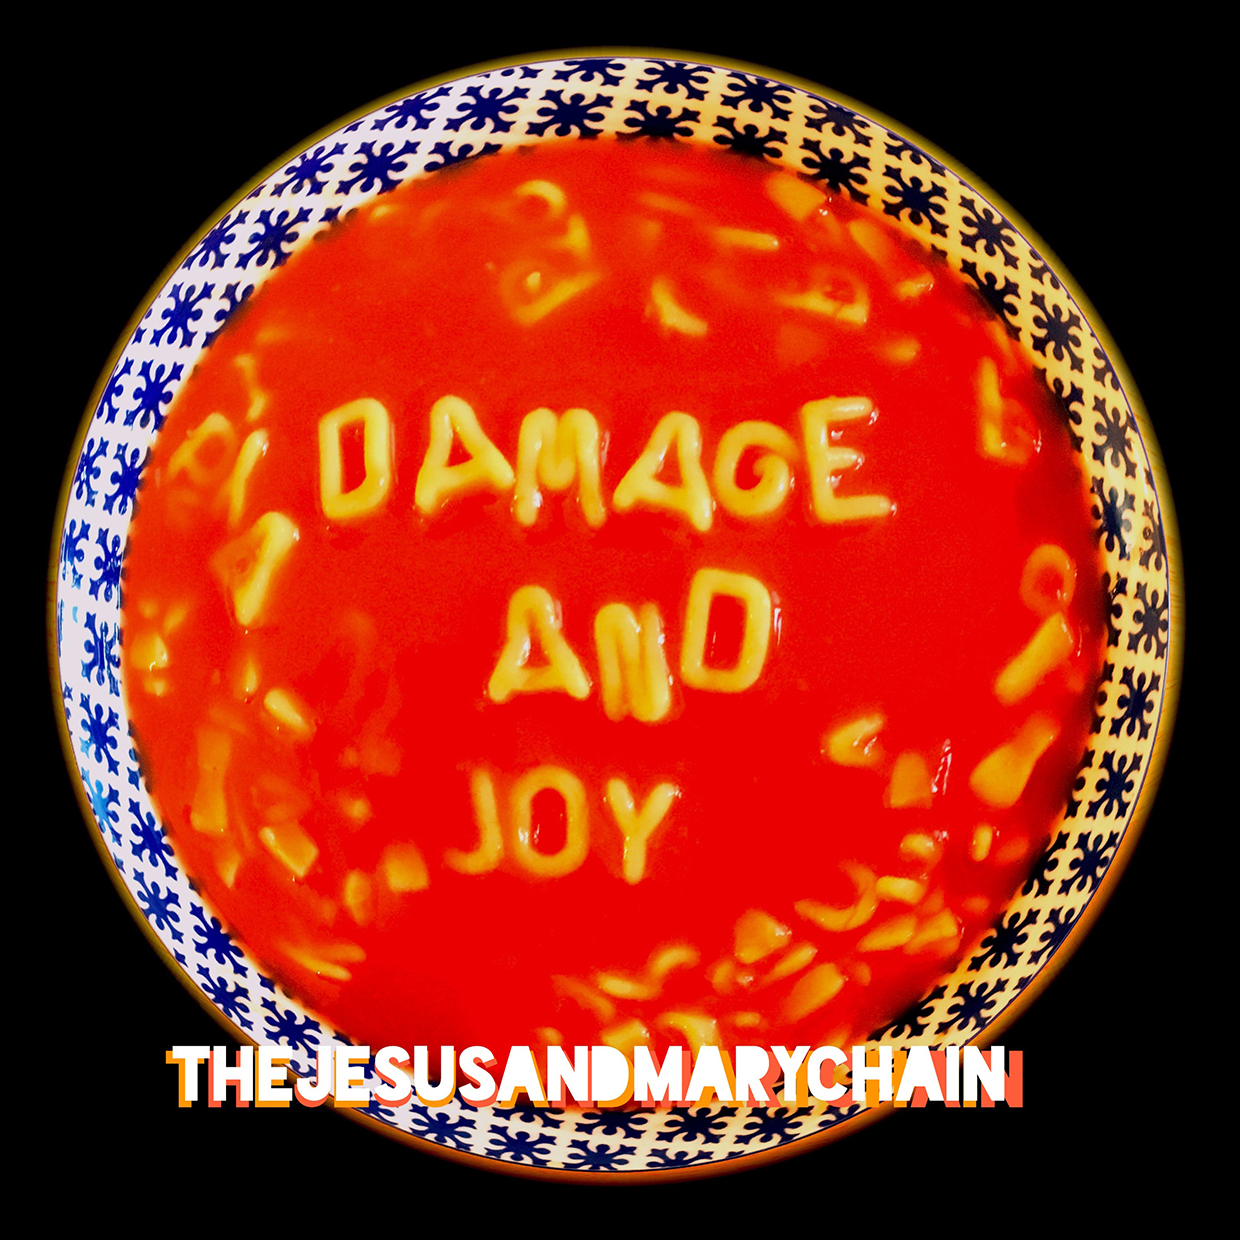 damage joy jesus mary chain stream album download listen The Jesus and Mary Chain release reunion album Damage and Joy: Stream/download